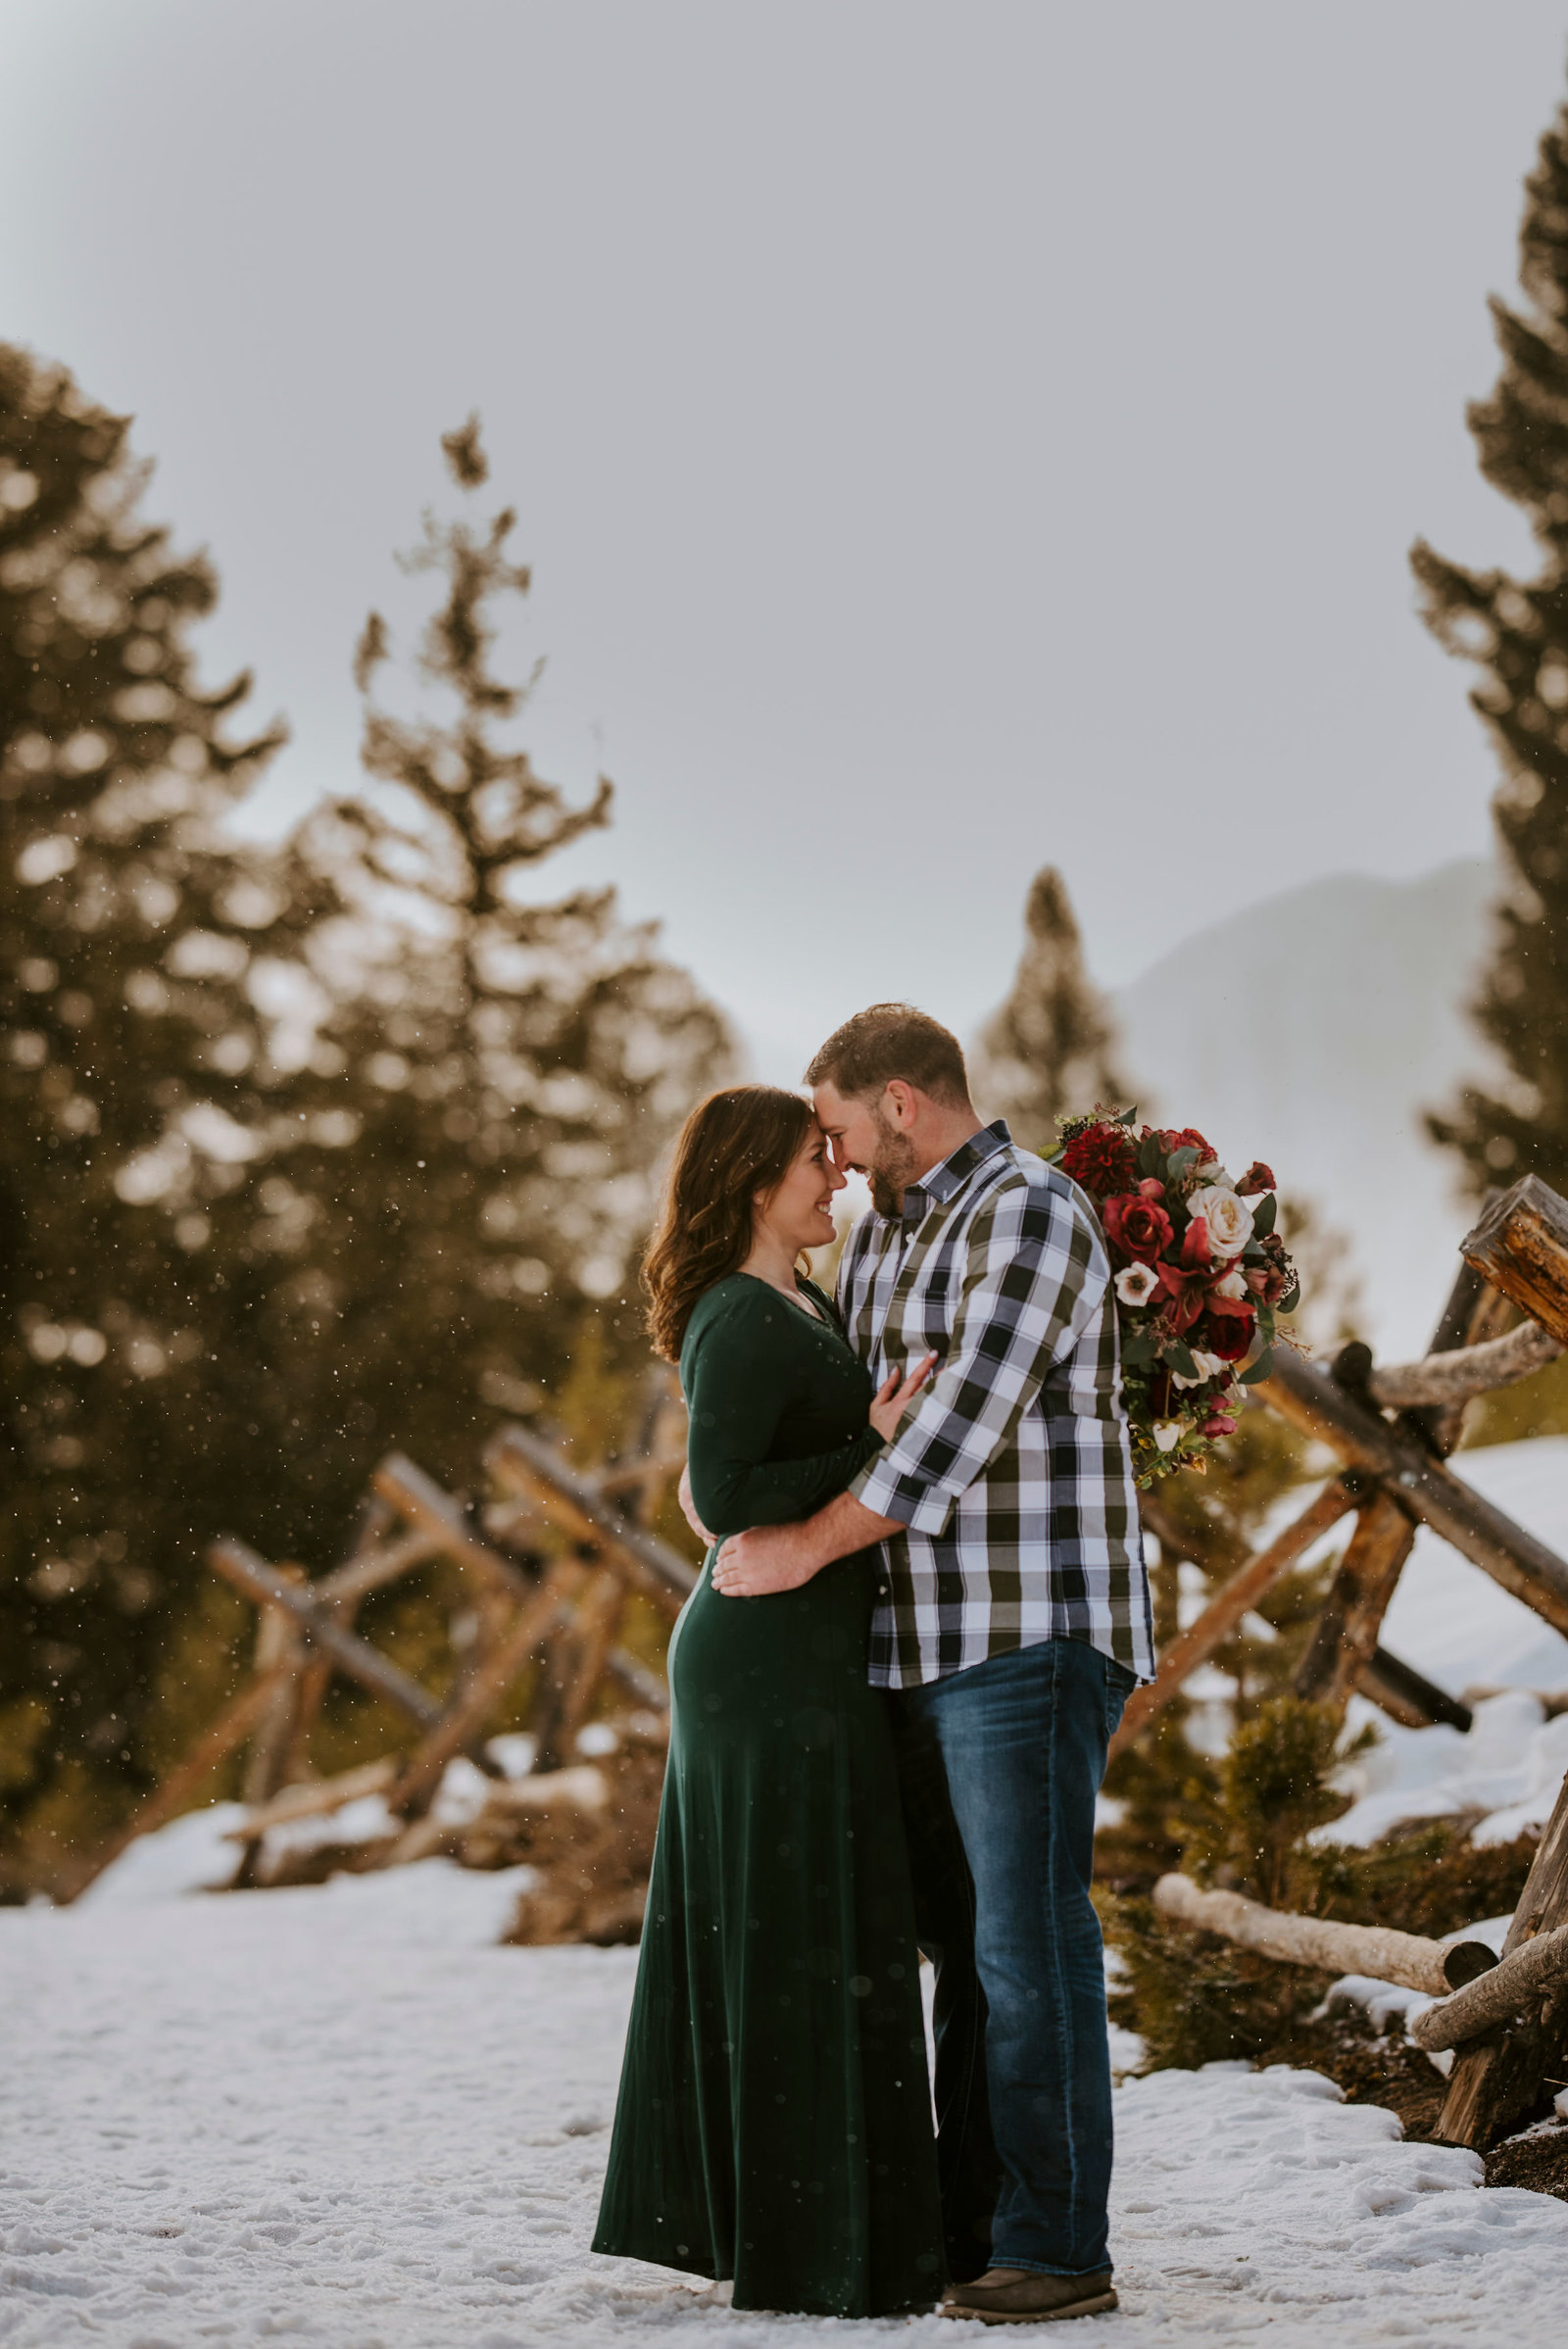 telluride_wedding_elopement_photographer_ouray_winter_elopement_small_wedding_intimate44